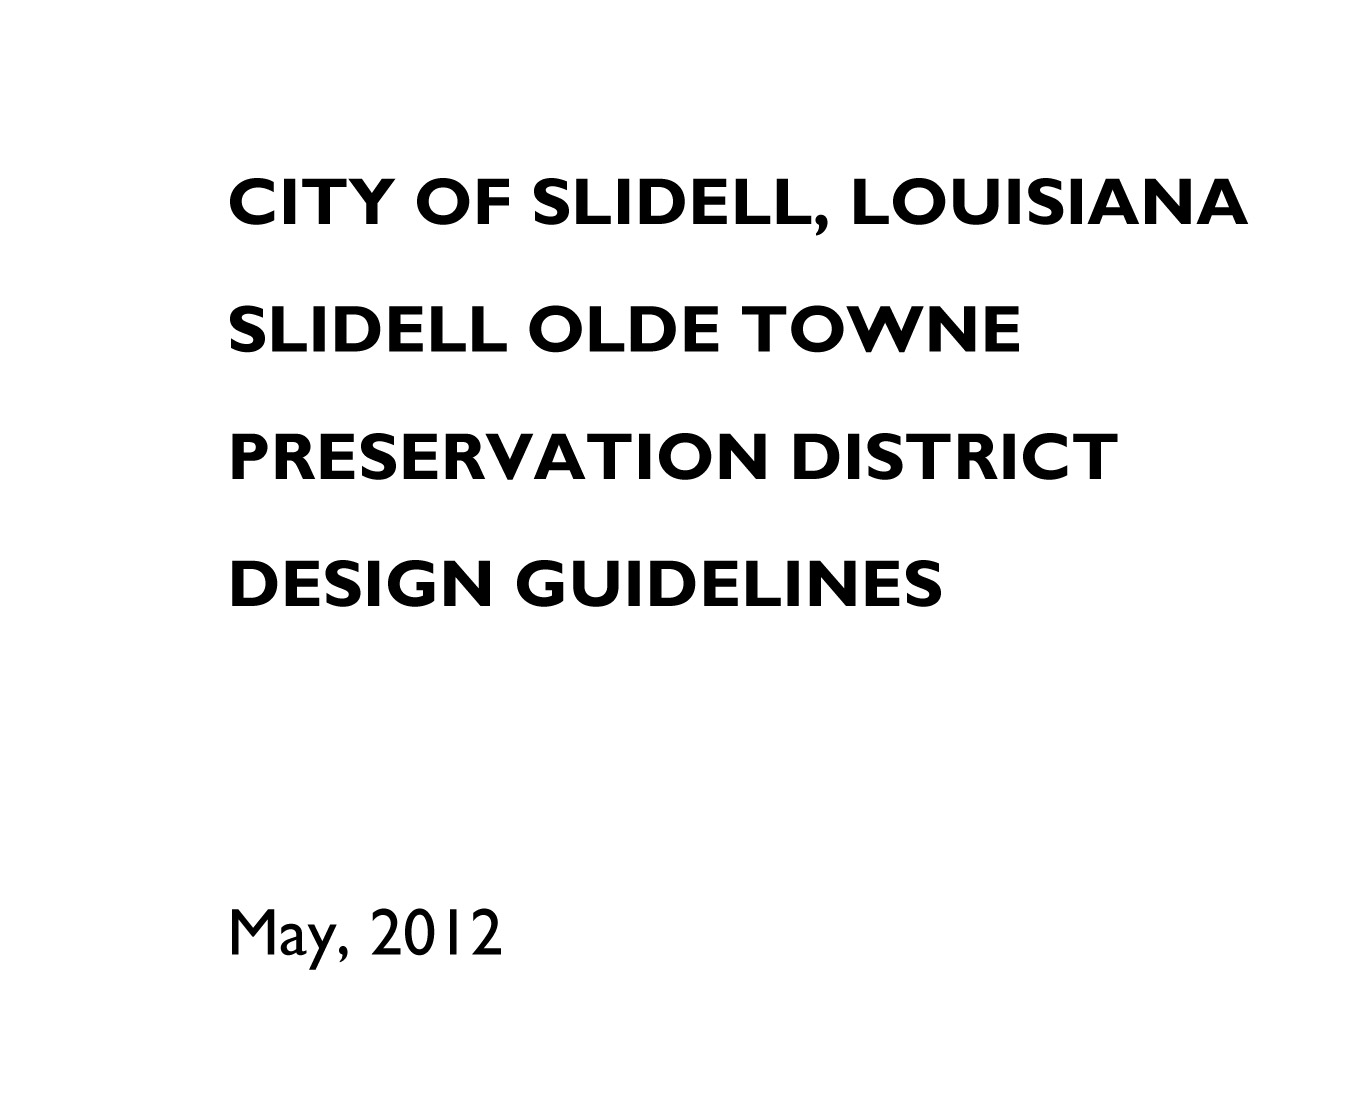 Slidell Olde Town Design Guidelines